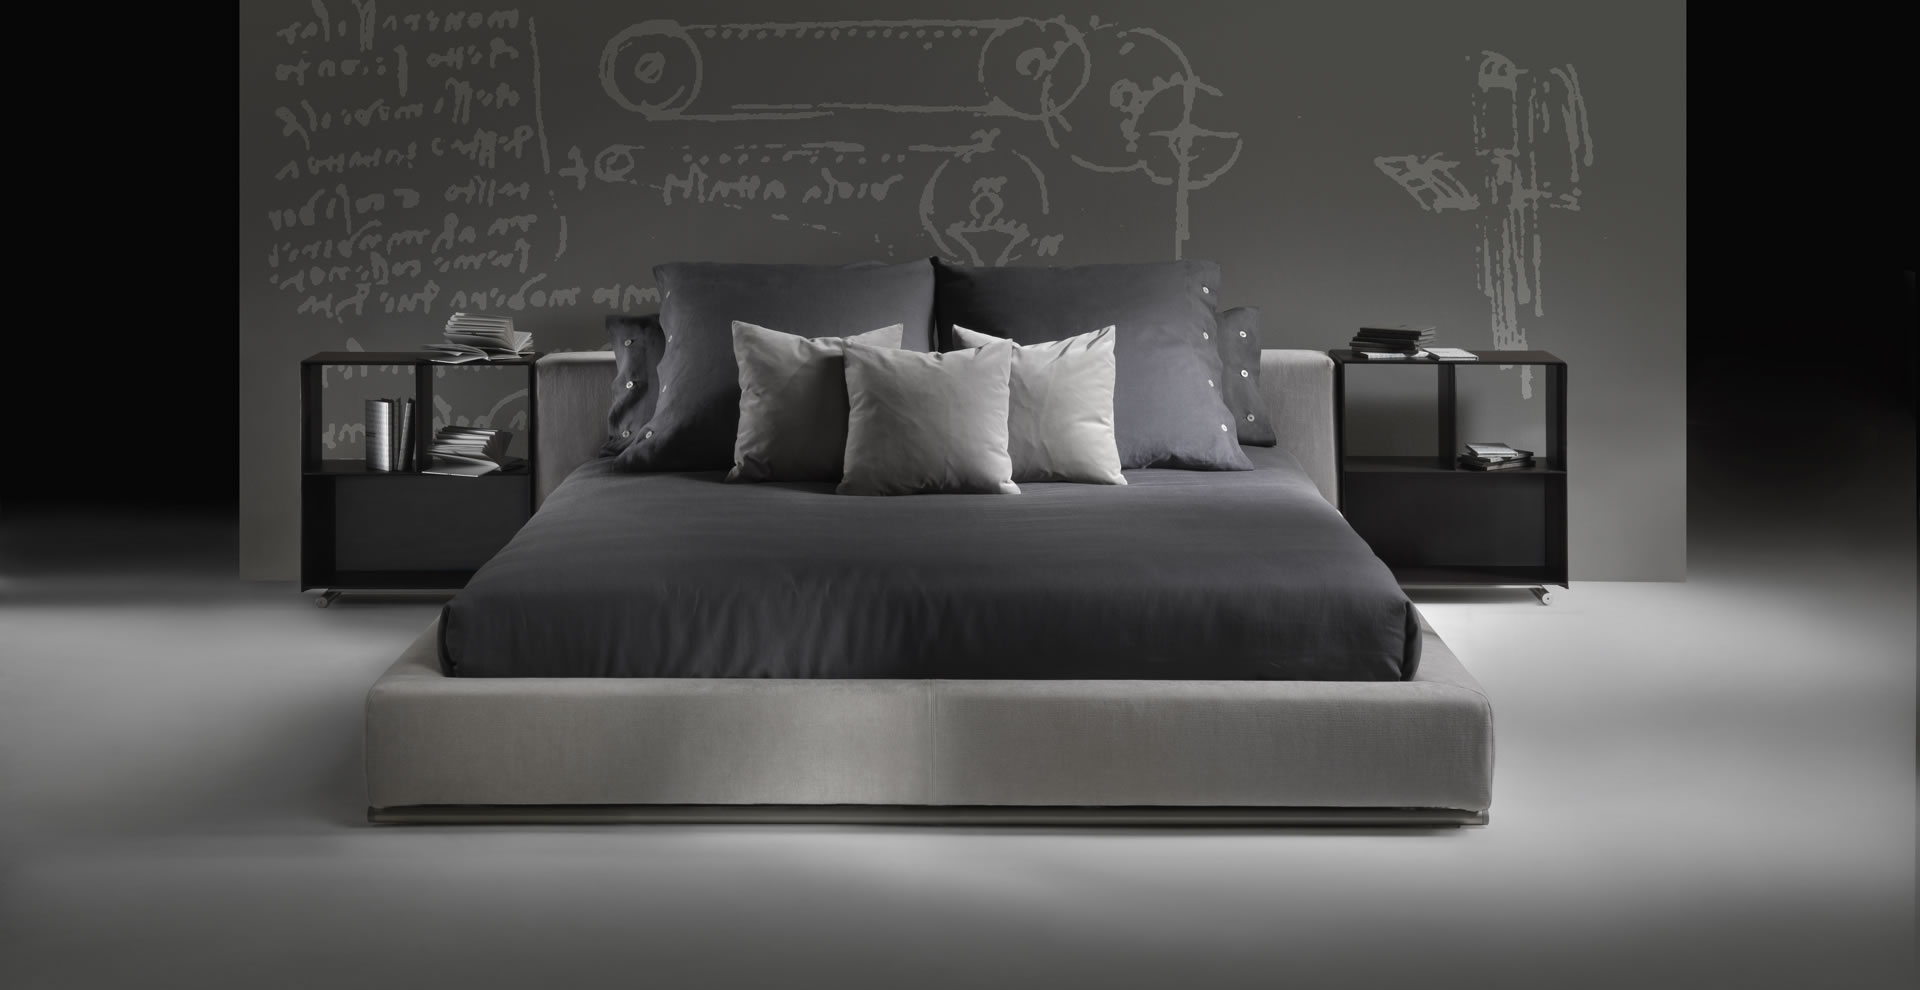 Groundpiece bed flexform letto groundpiece flexform groundpiece bed flexform - Flexform divano groundpiece ...